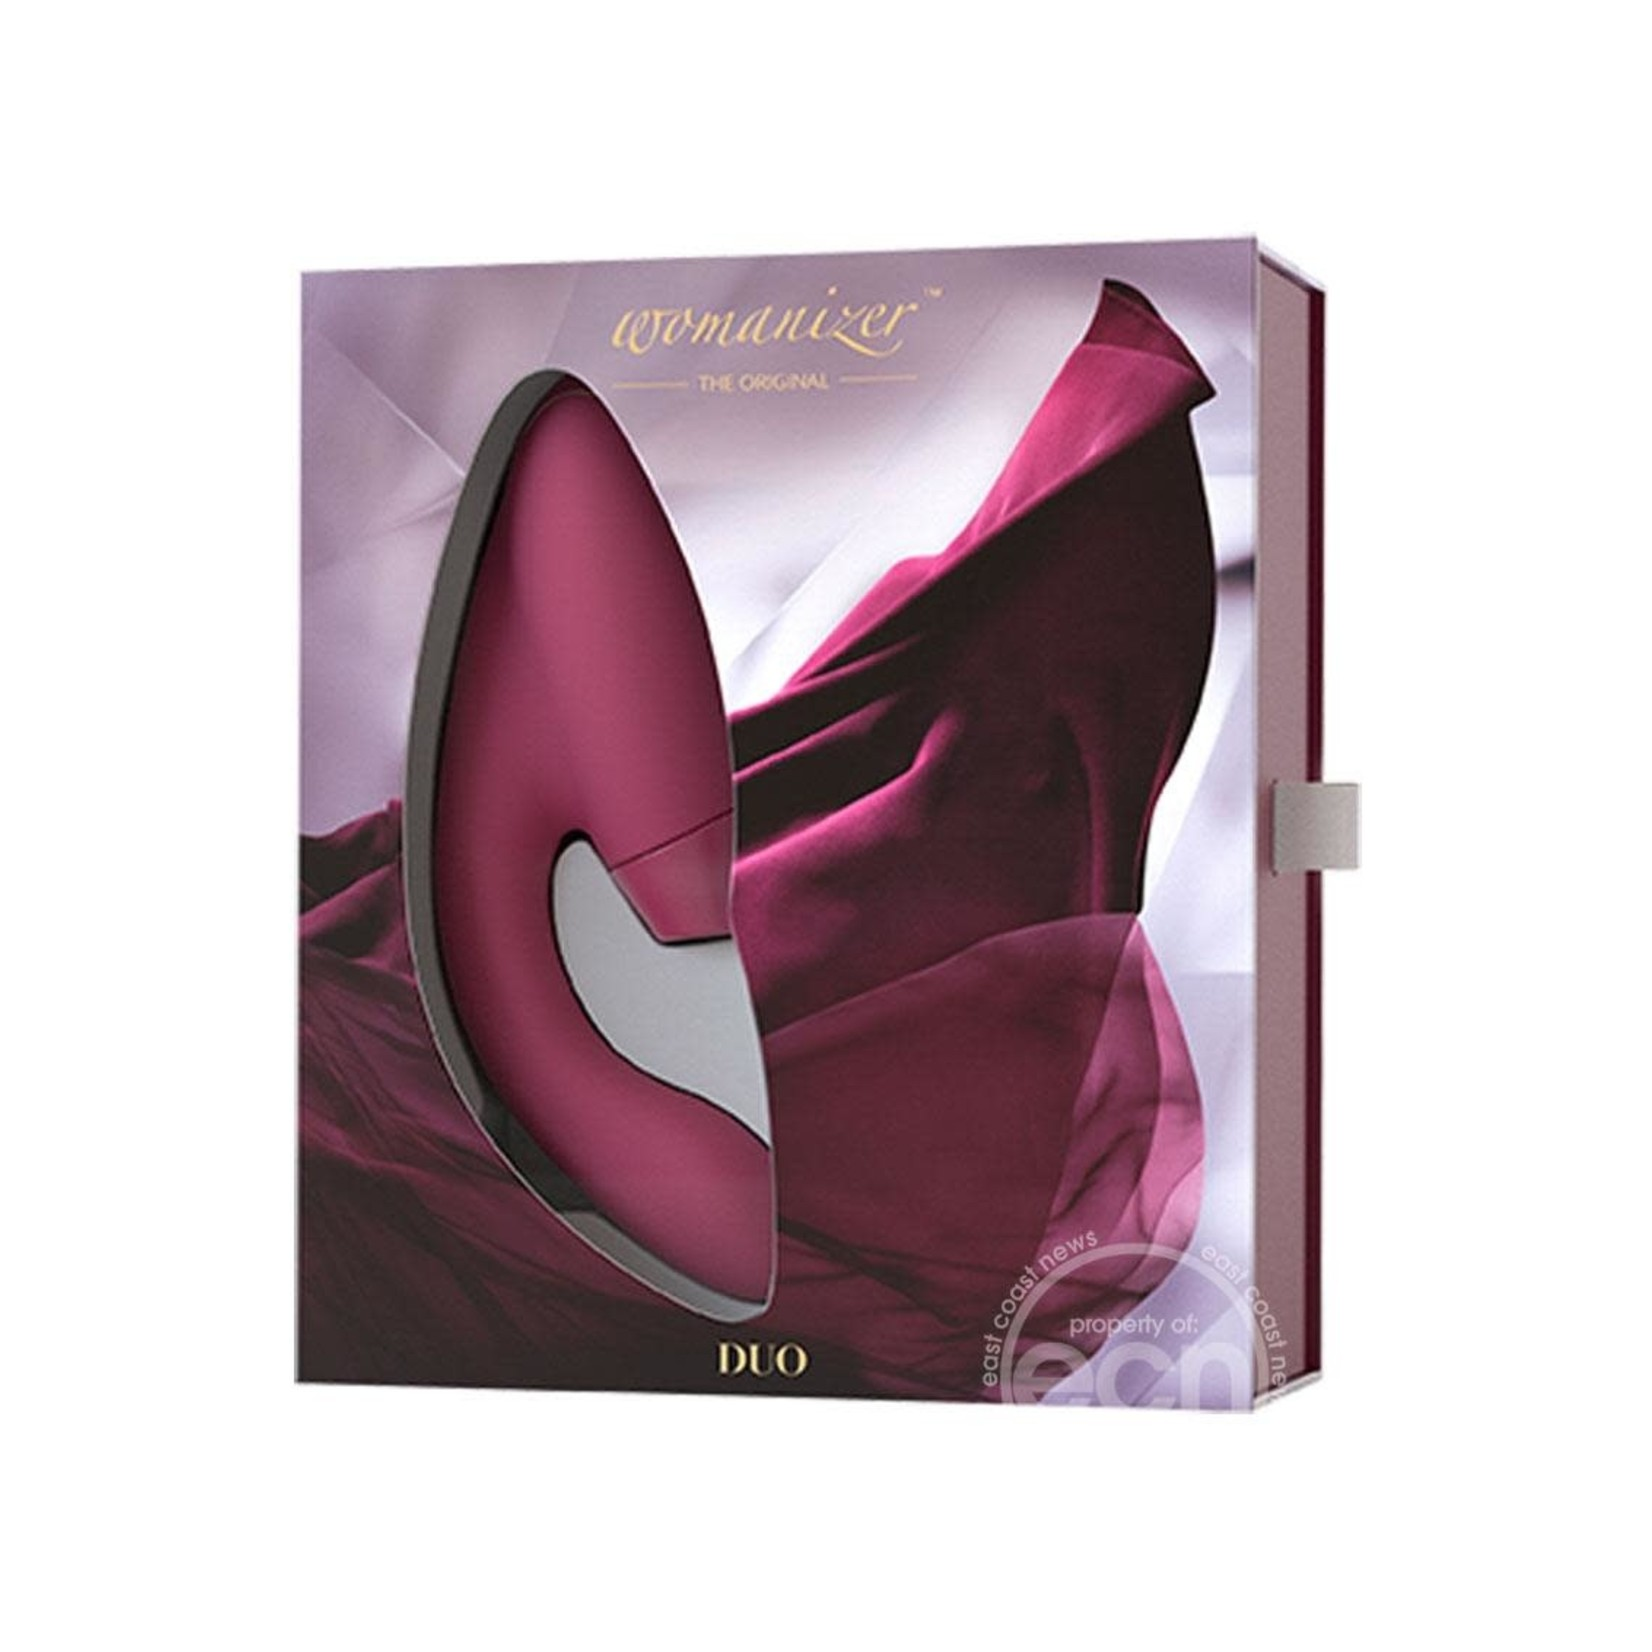 Womanizer Duo Silicone Rechargeable Clitoral And G-Spot Stimulator - Bordeaux